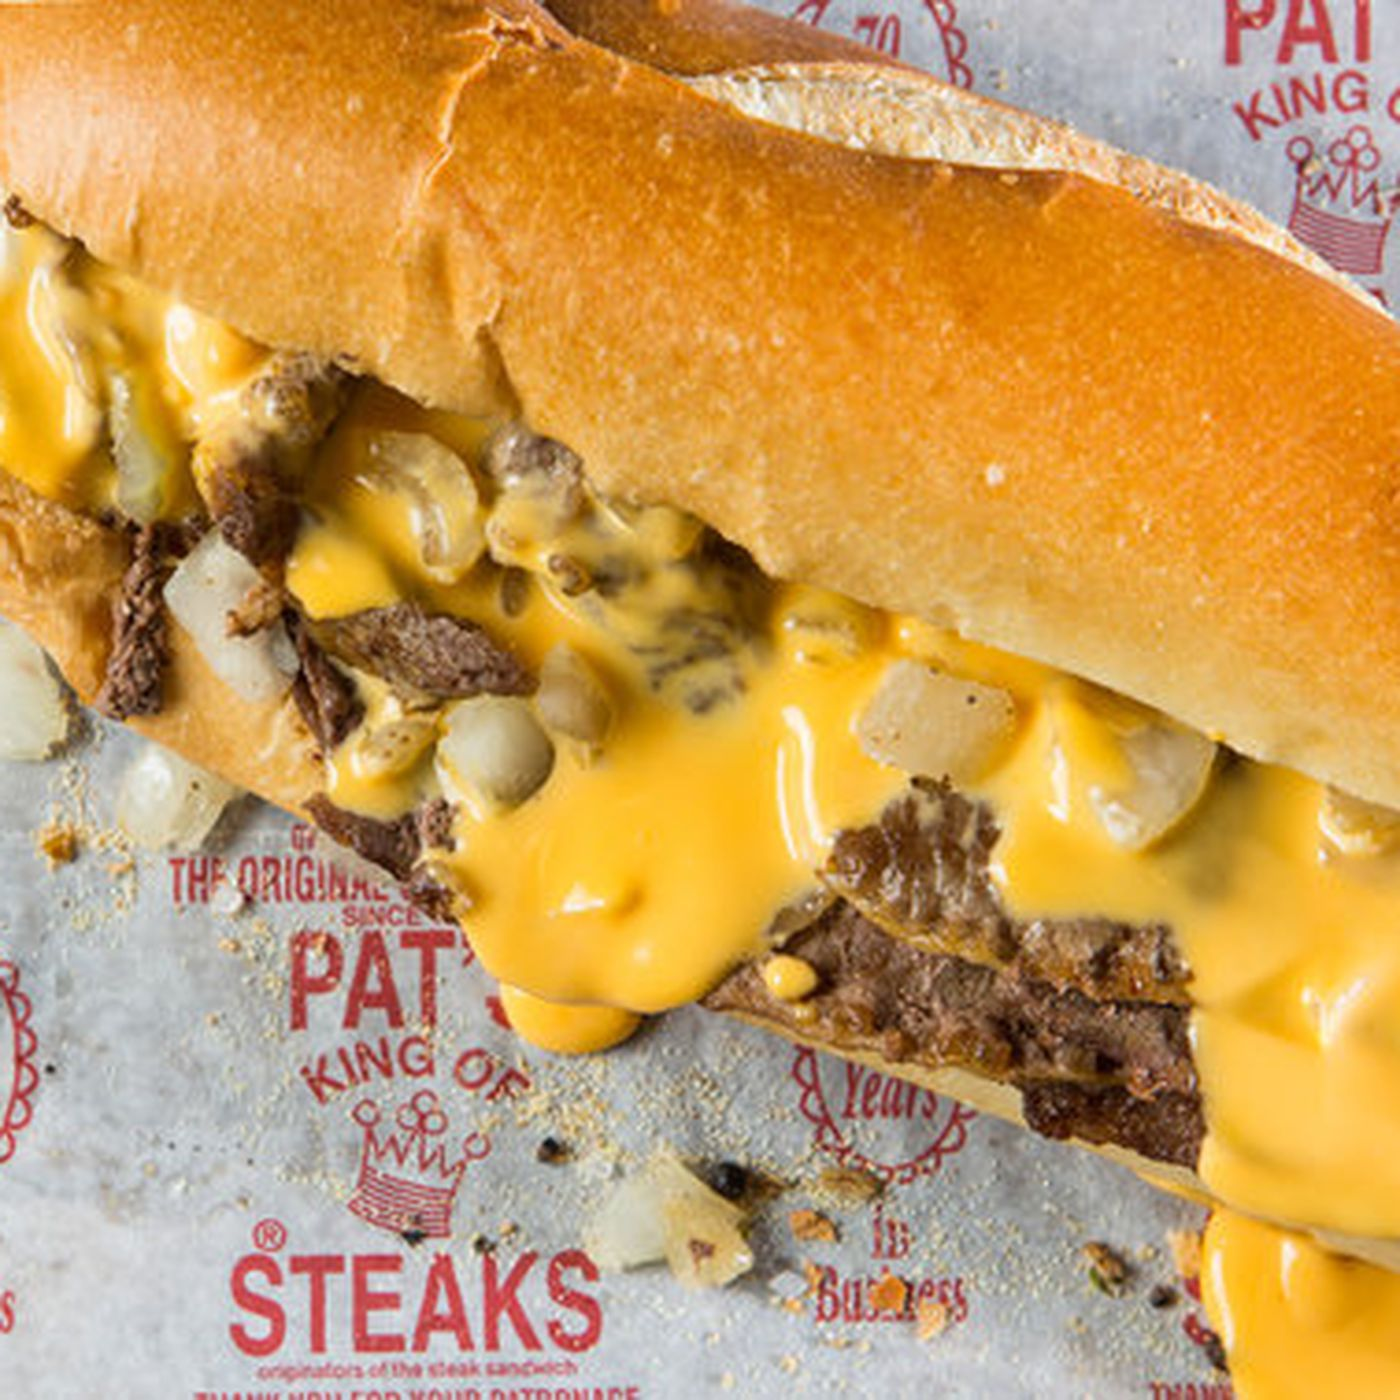 Pat's King of Steaks Now Delivers Cheesesteaks Nationwide - Eater ...